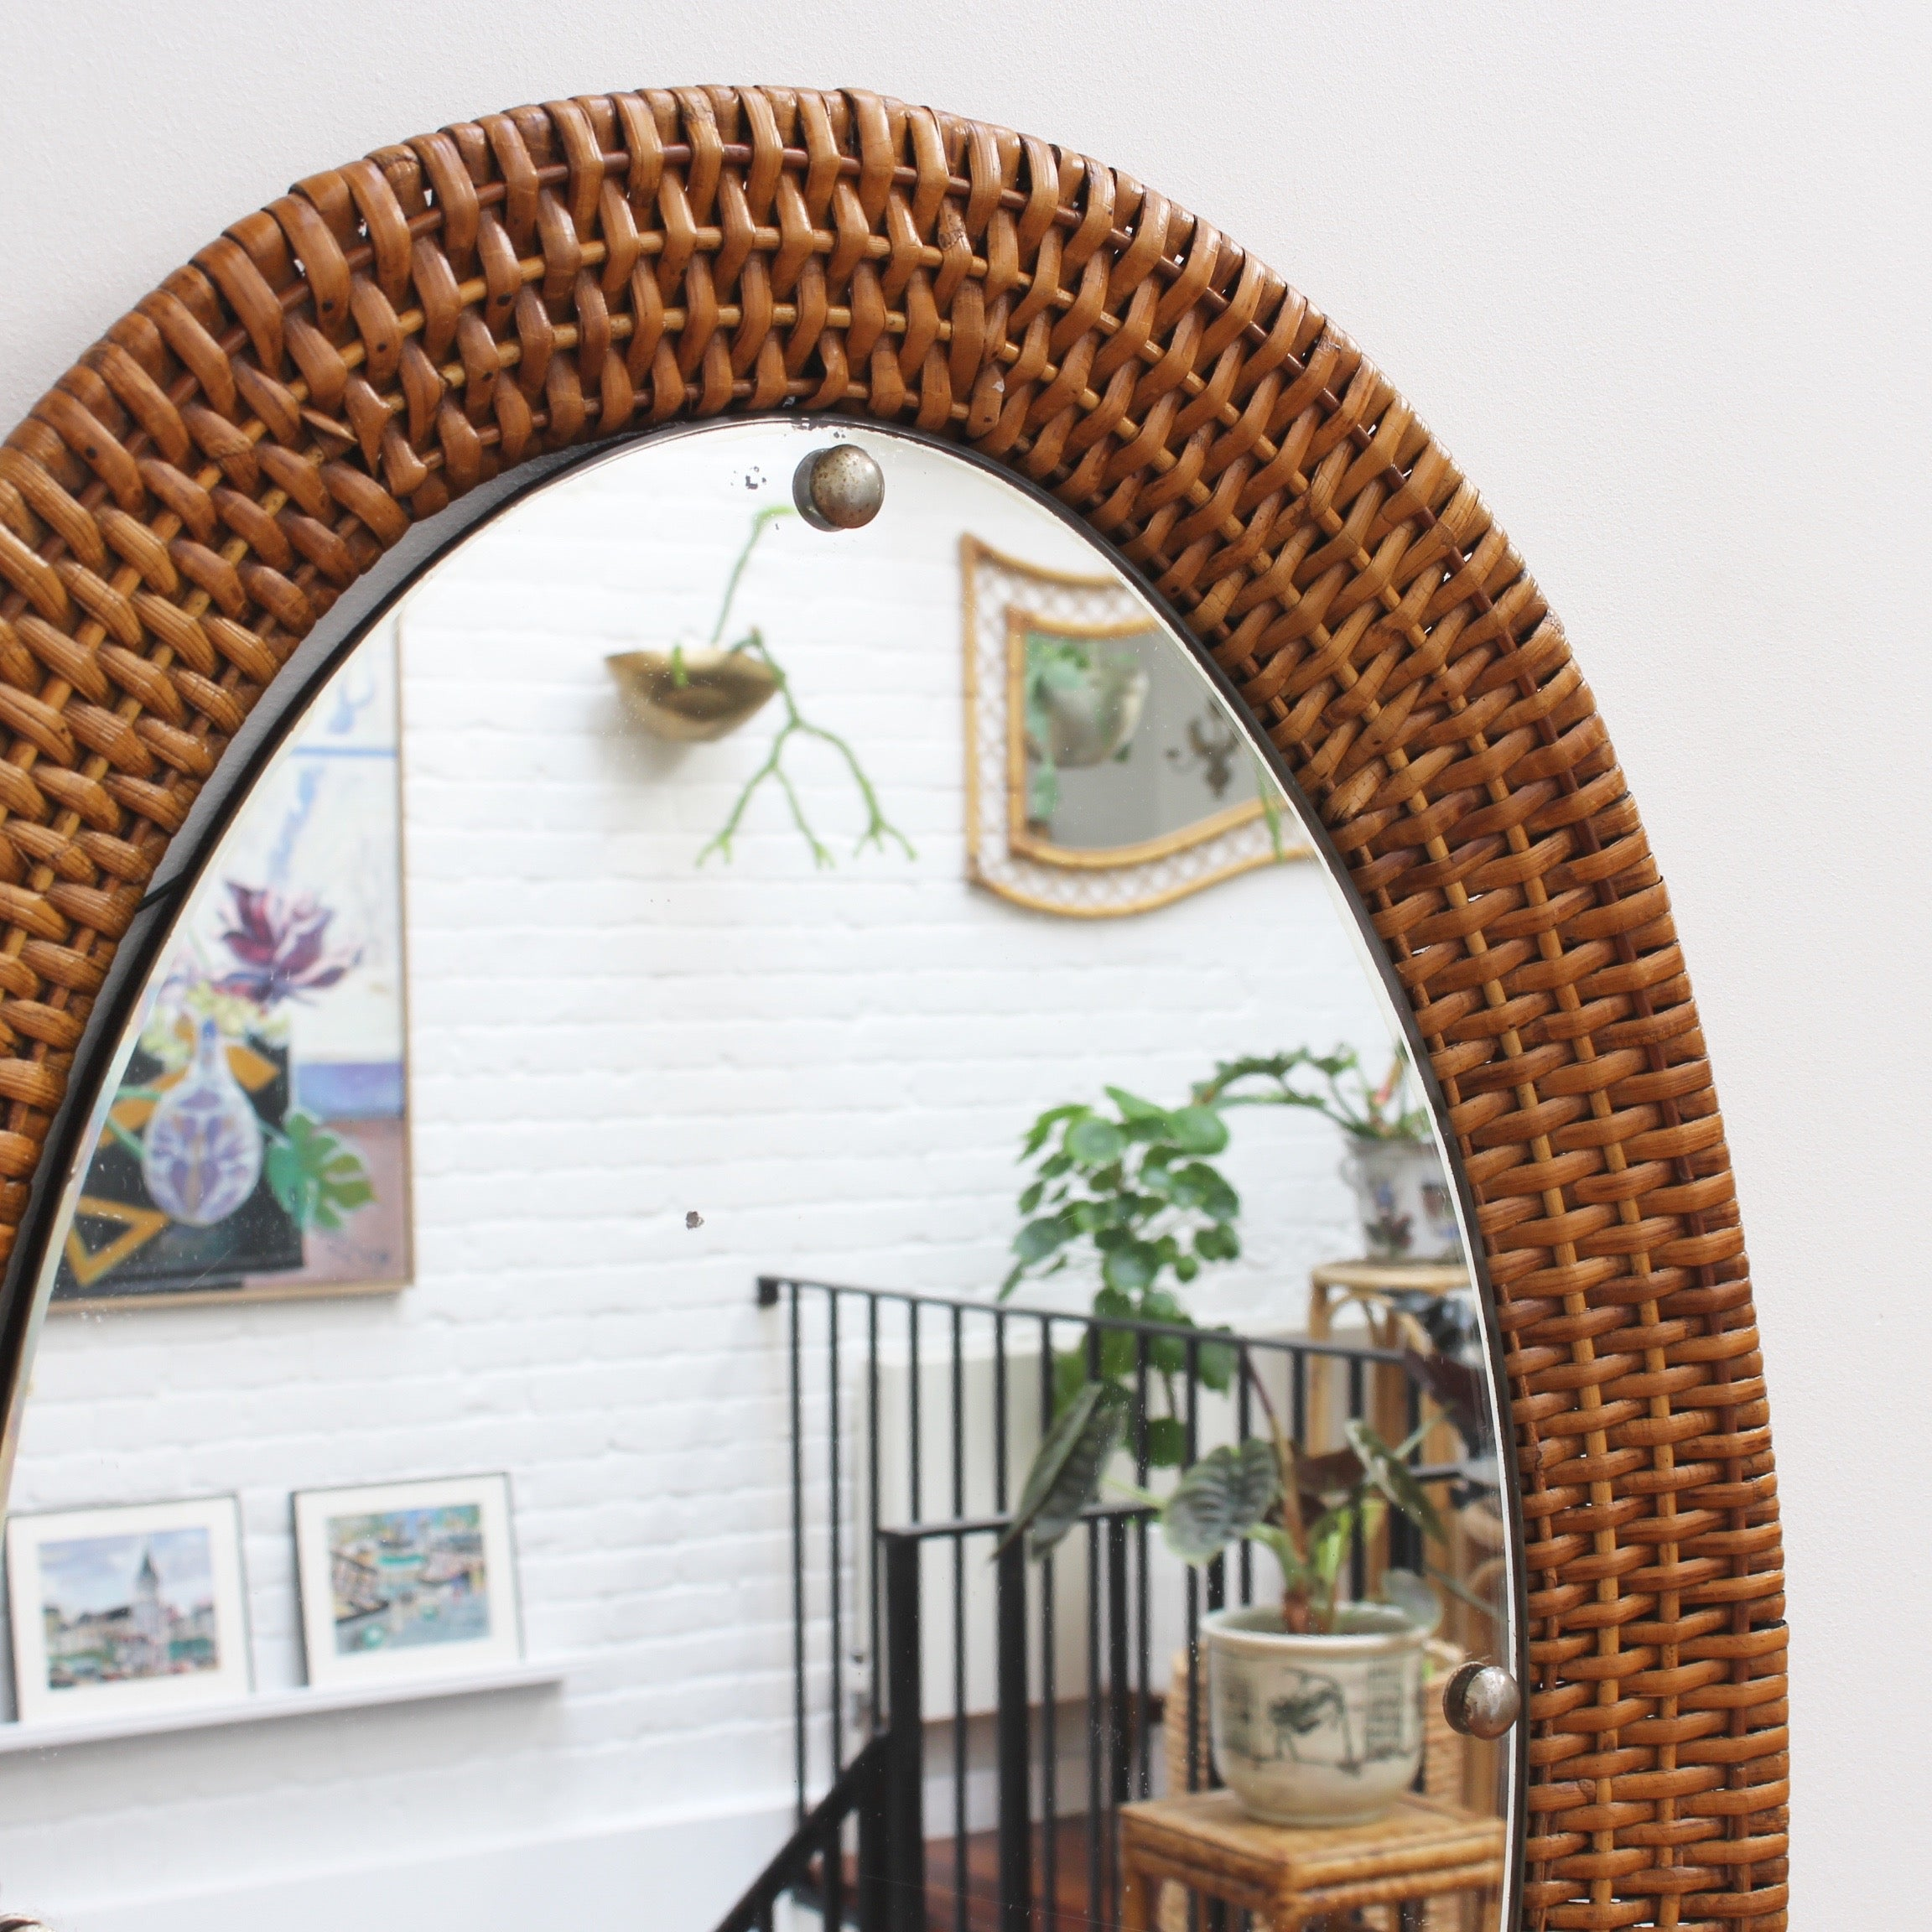 Italian Wicker Rattan Oval-Shaped Wall Mirror (circa 1960s)